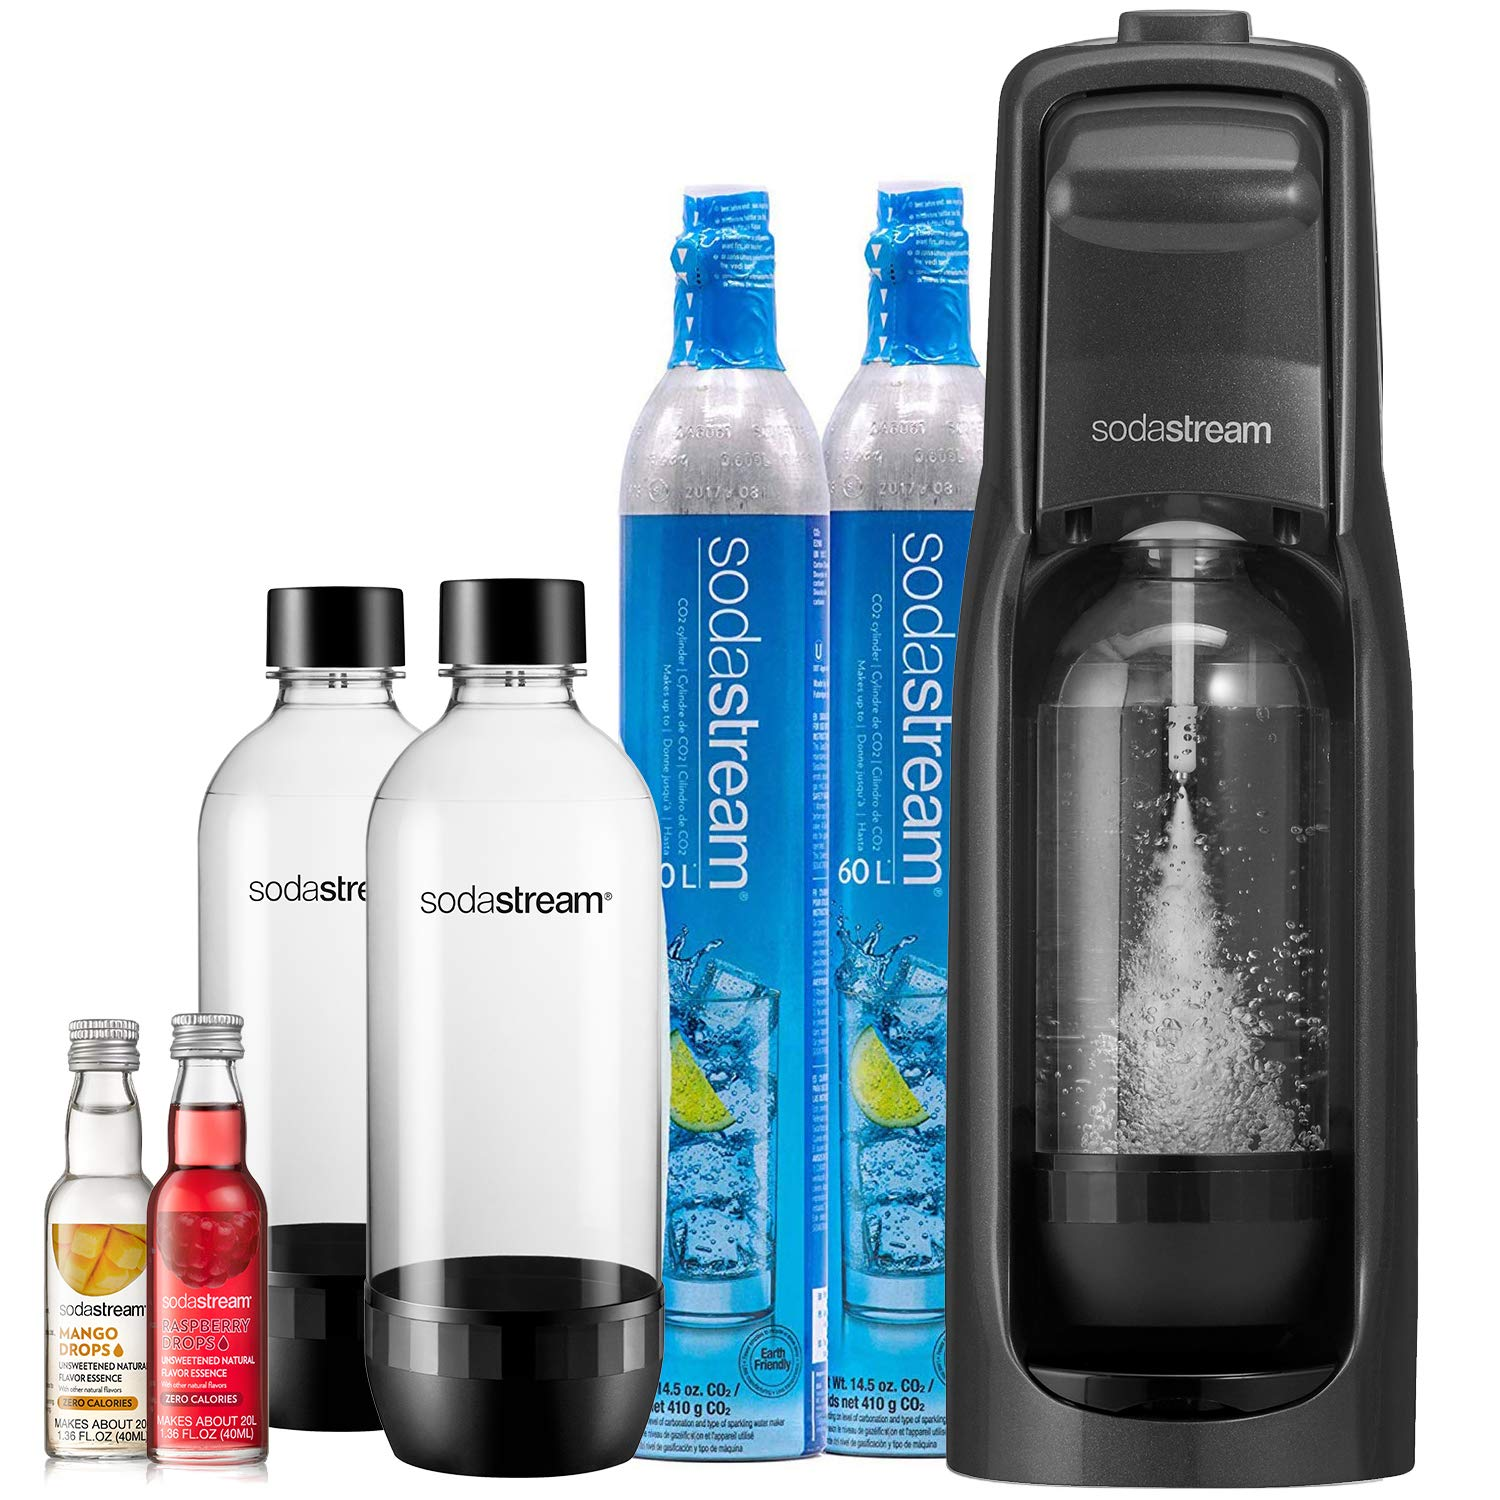 SodaStream review consumer report